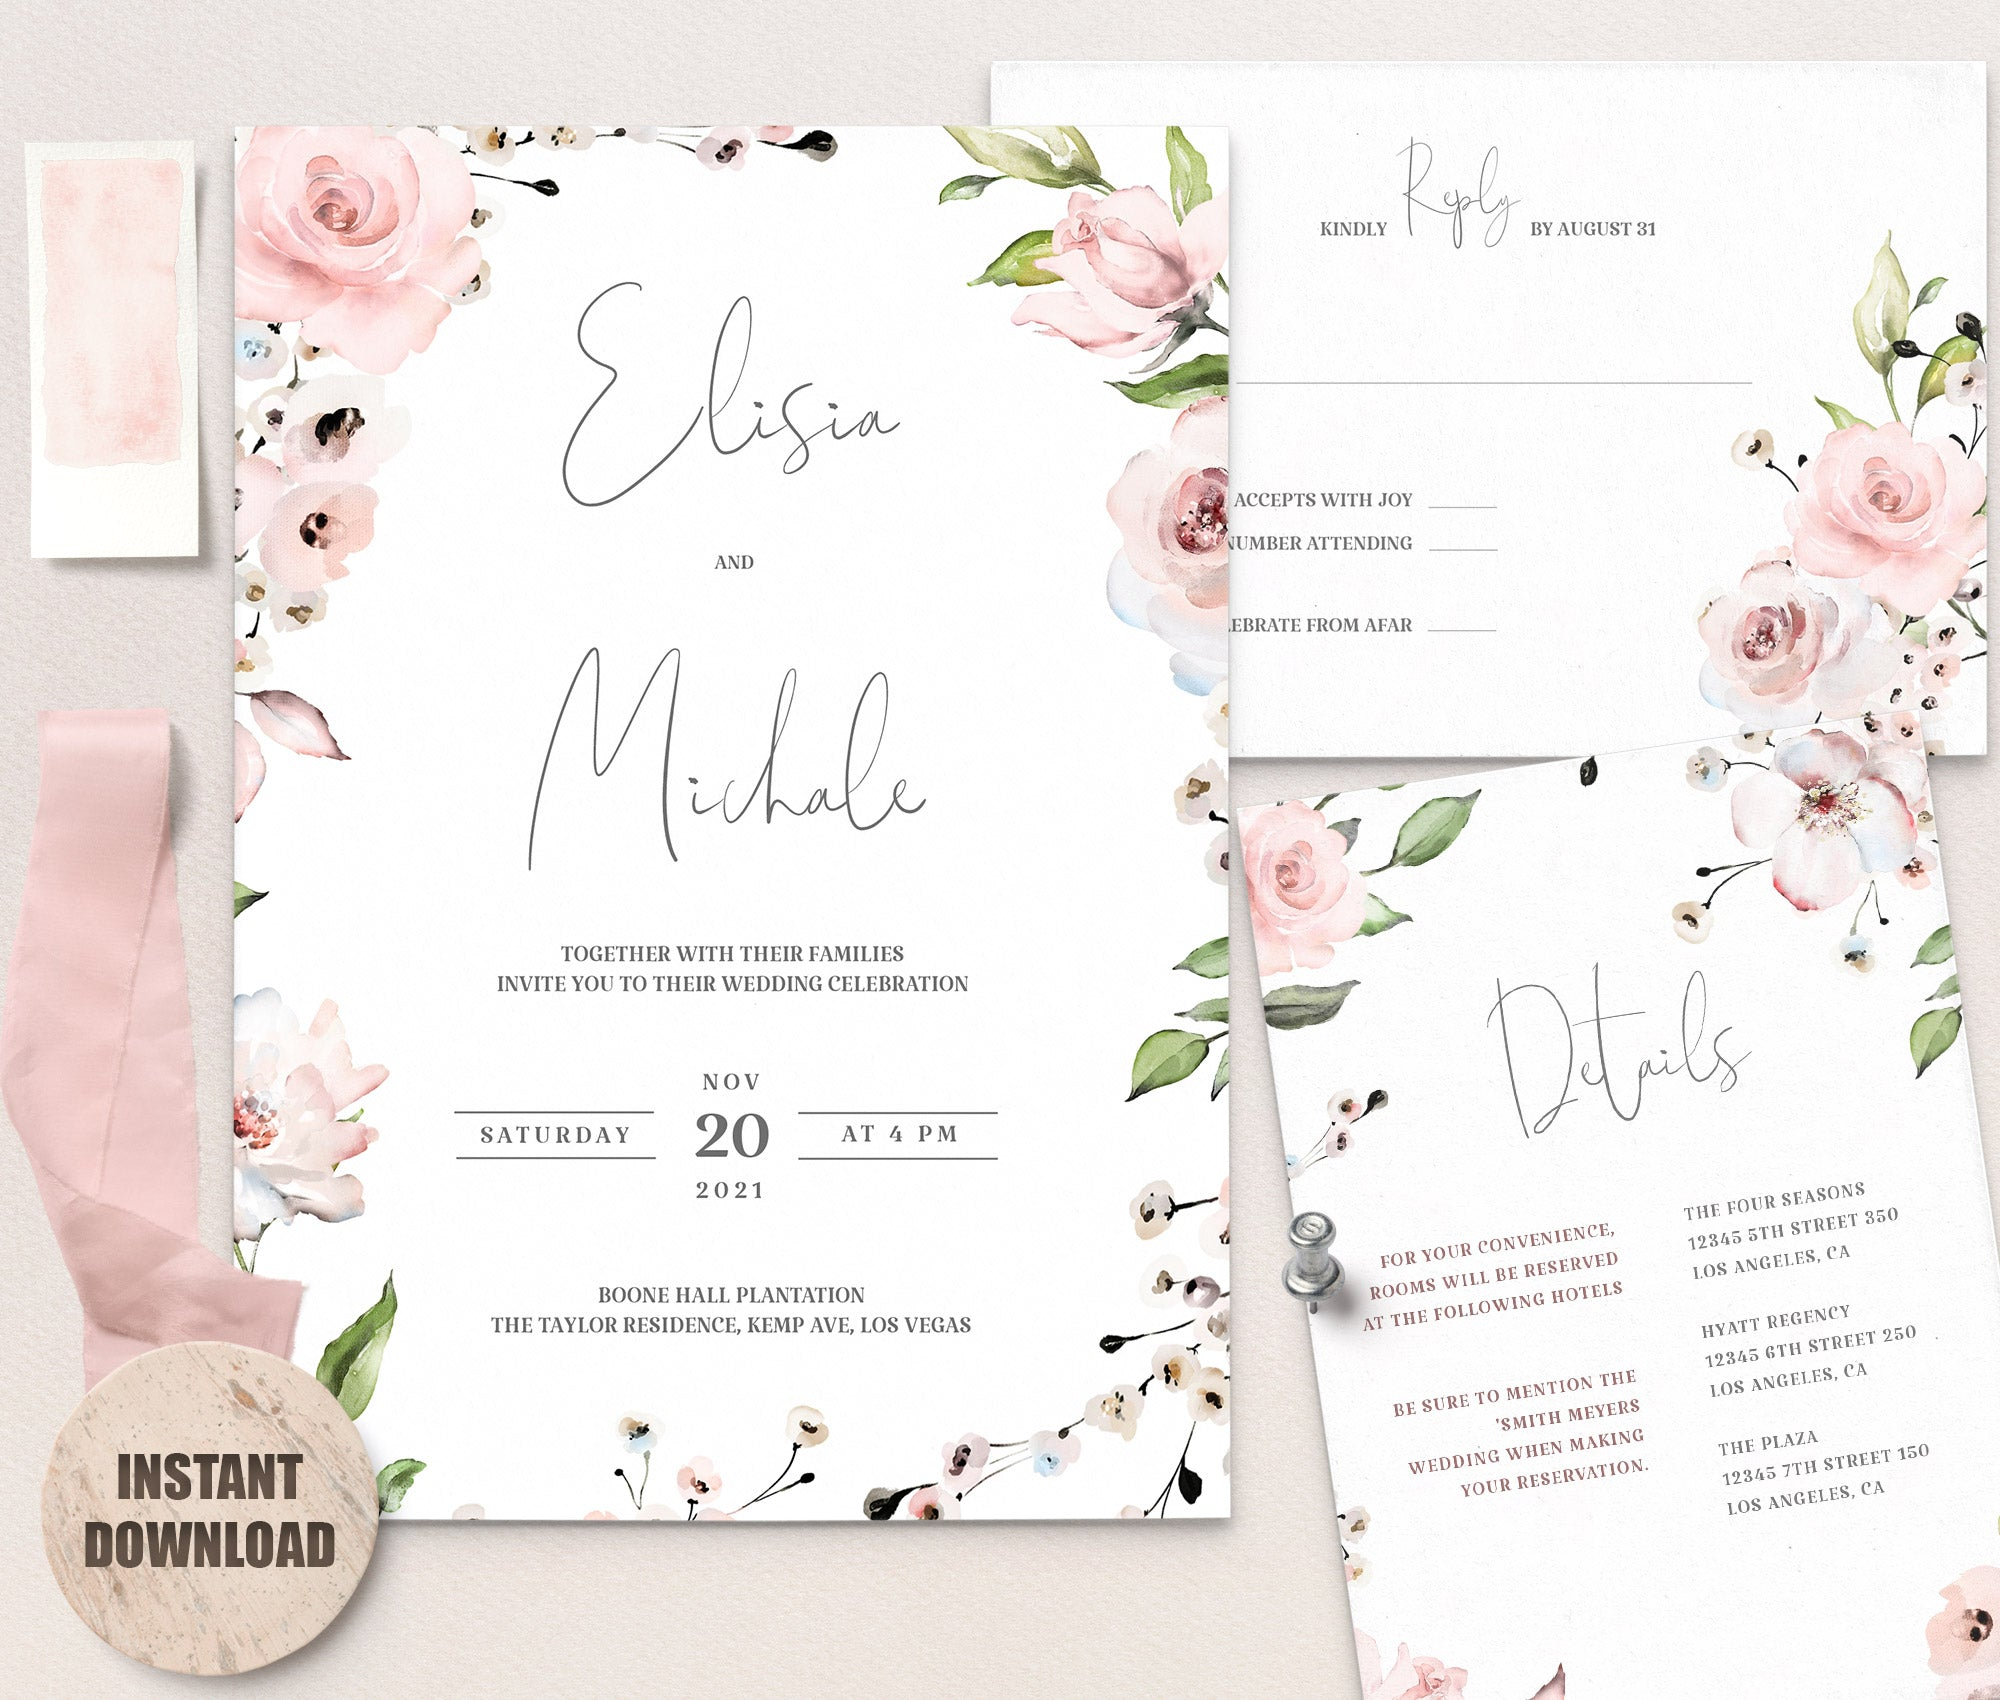 LOVAL Wedding Template Bundles set 1